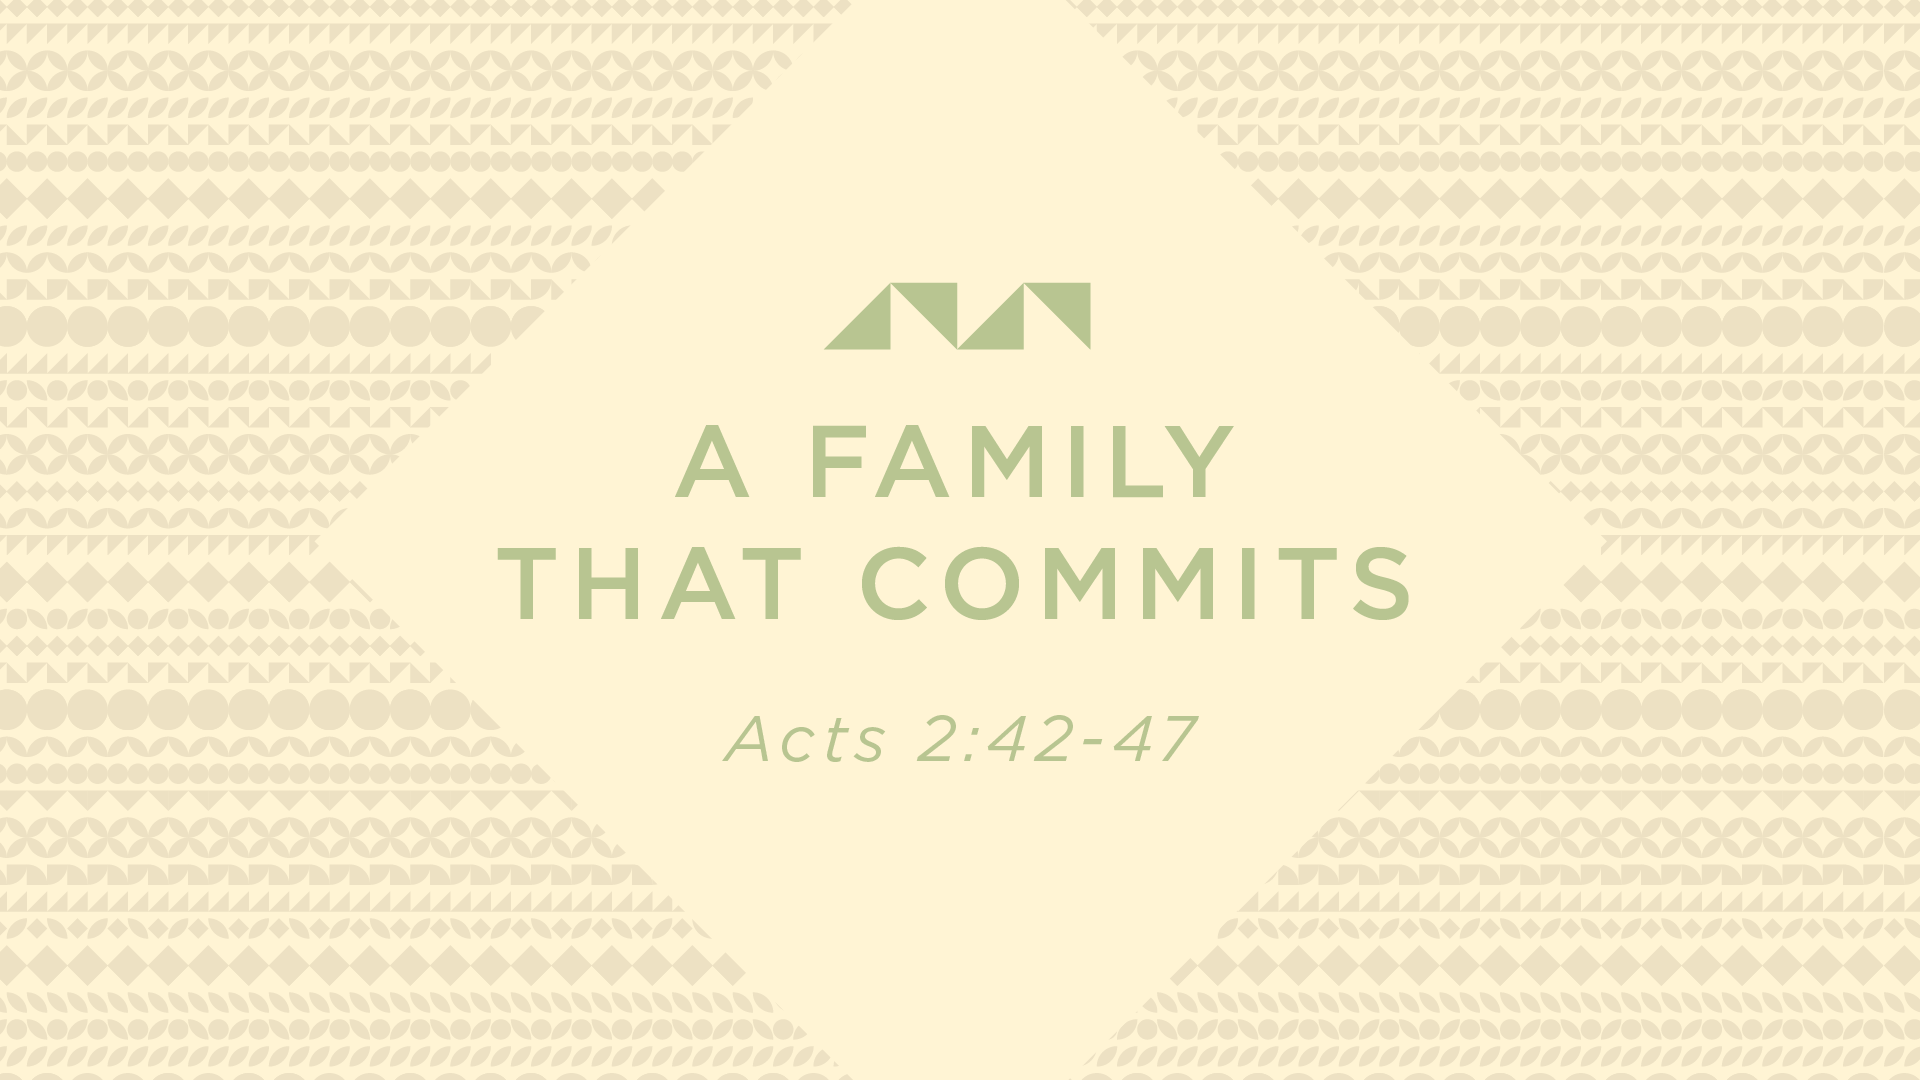 A Family That Commits